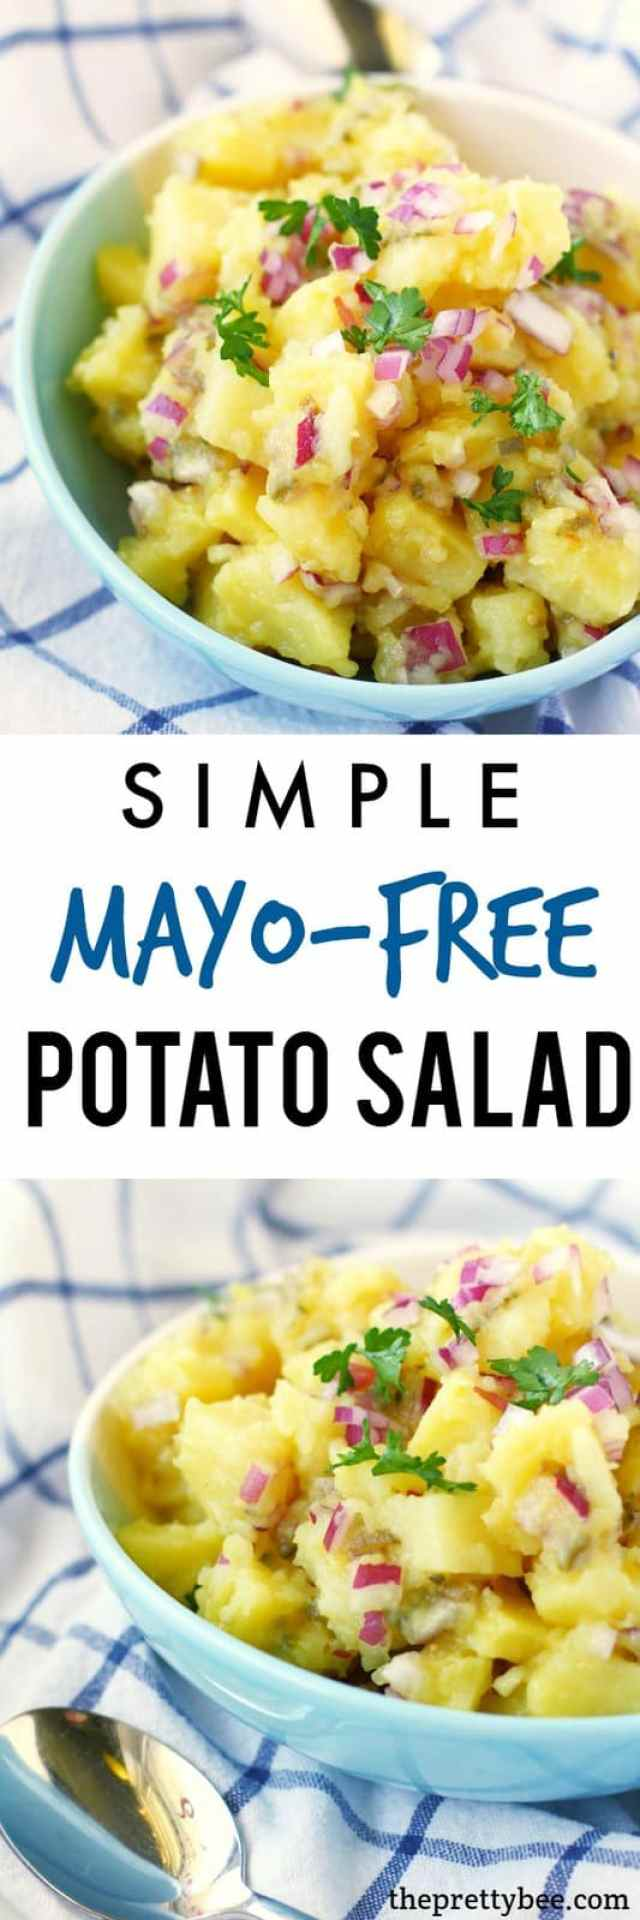 Everyone LOVES this easy mayo-free potato salad! It's tangy and delicious!